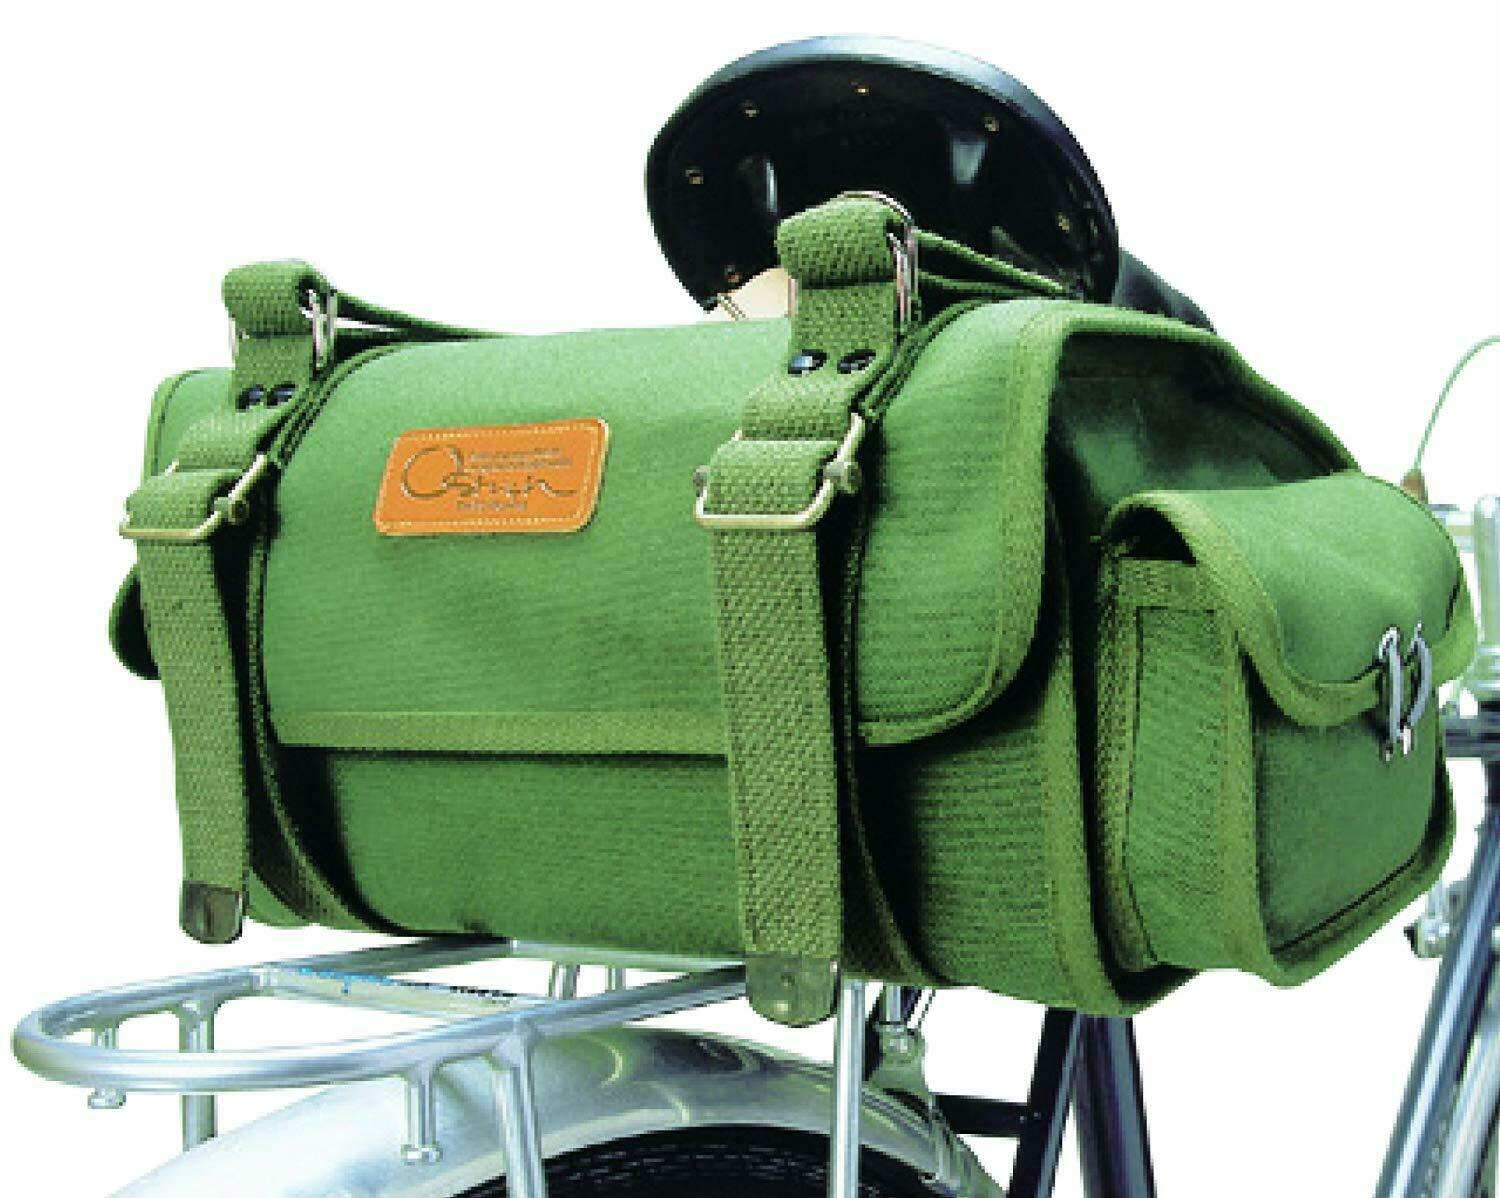 Ostrich Bicycle Saddle Bag S2 verde Cotton Canvas No. 6 Made in Japan FS